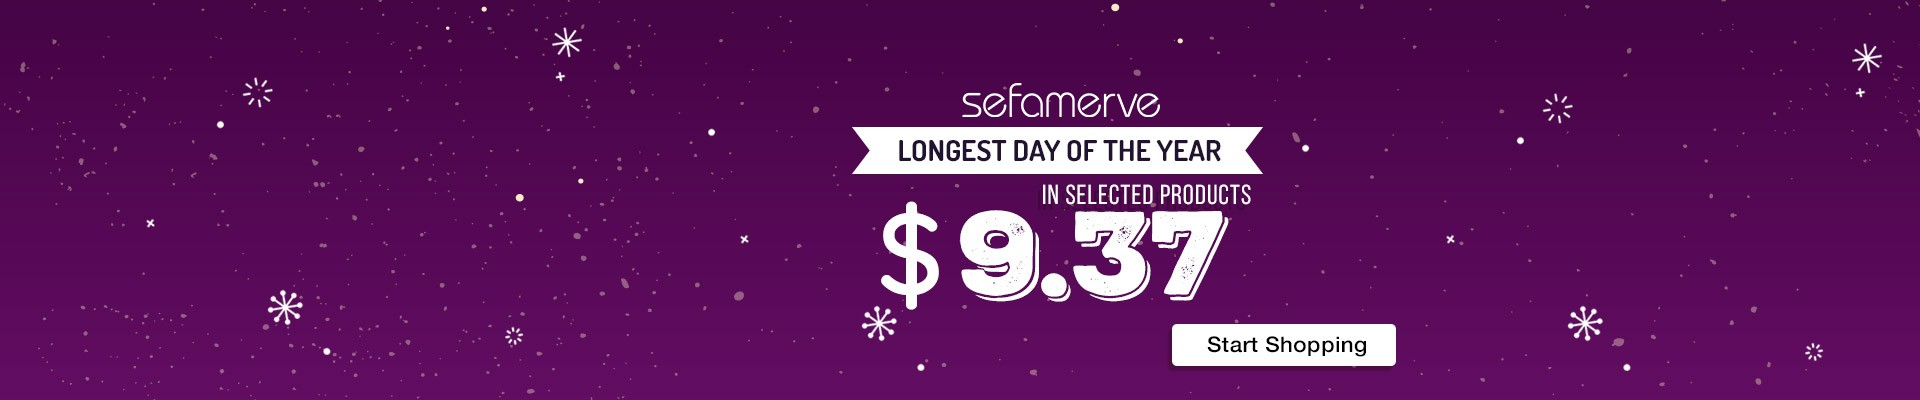 LONGEST DAY OF THE YEAR, SPECIFIC PRODUCTS ARE SINGLE PRICE